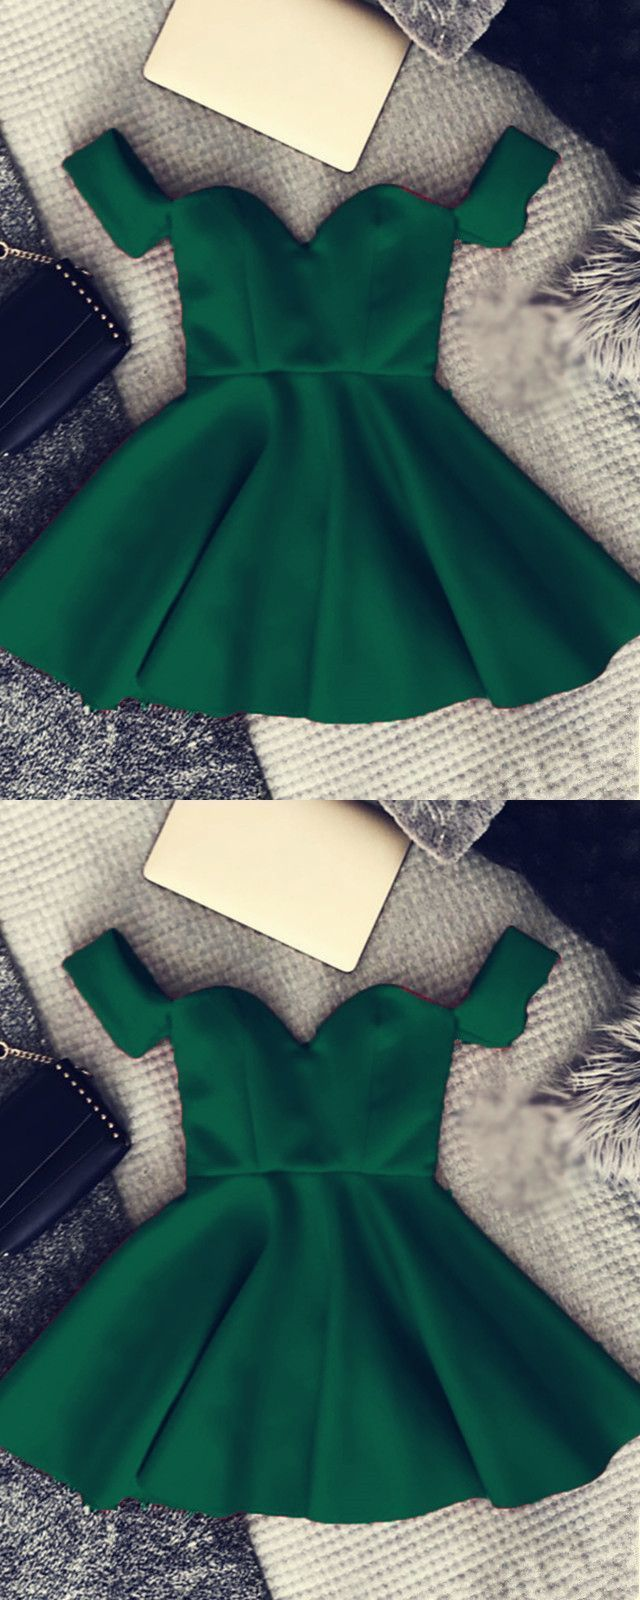 897 Simple Green Off The Shoulder Sweetheart Cap Sleeves Strapless Ruffles Satin Evening Dresses Green Homecoming Dresses Satin Evening Dresses Homecoming Dresses [ 1600 x 640 Pixel ]